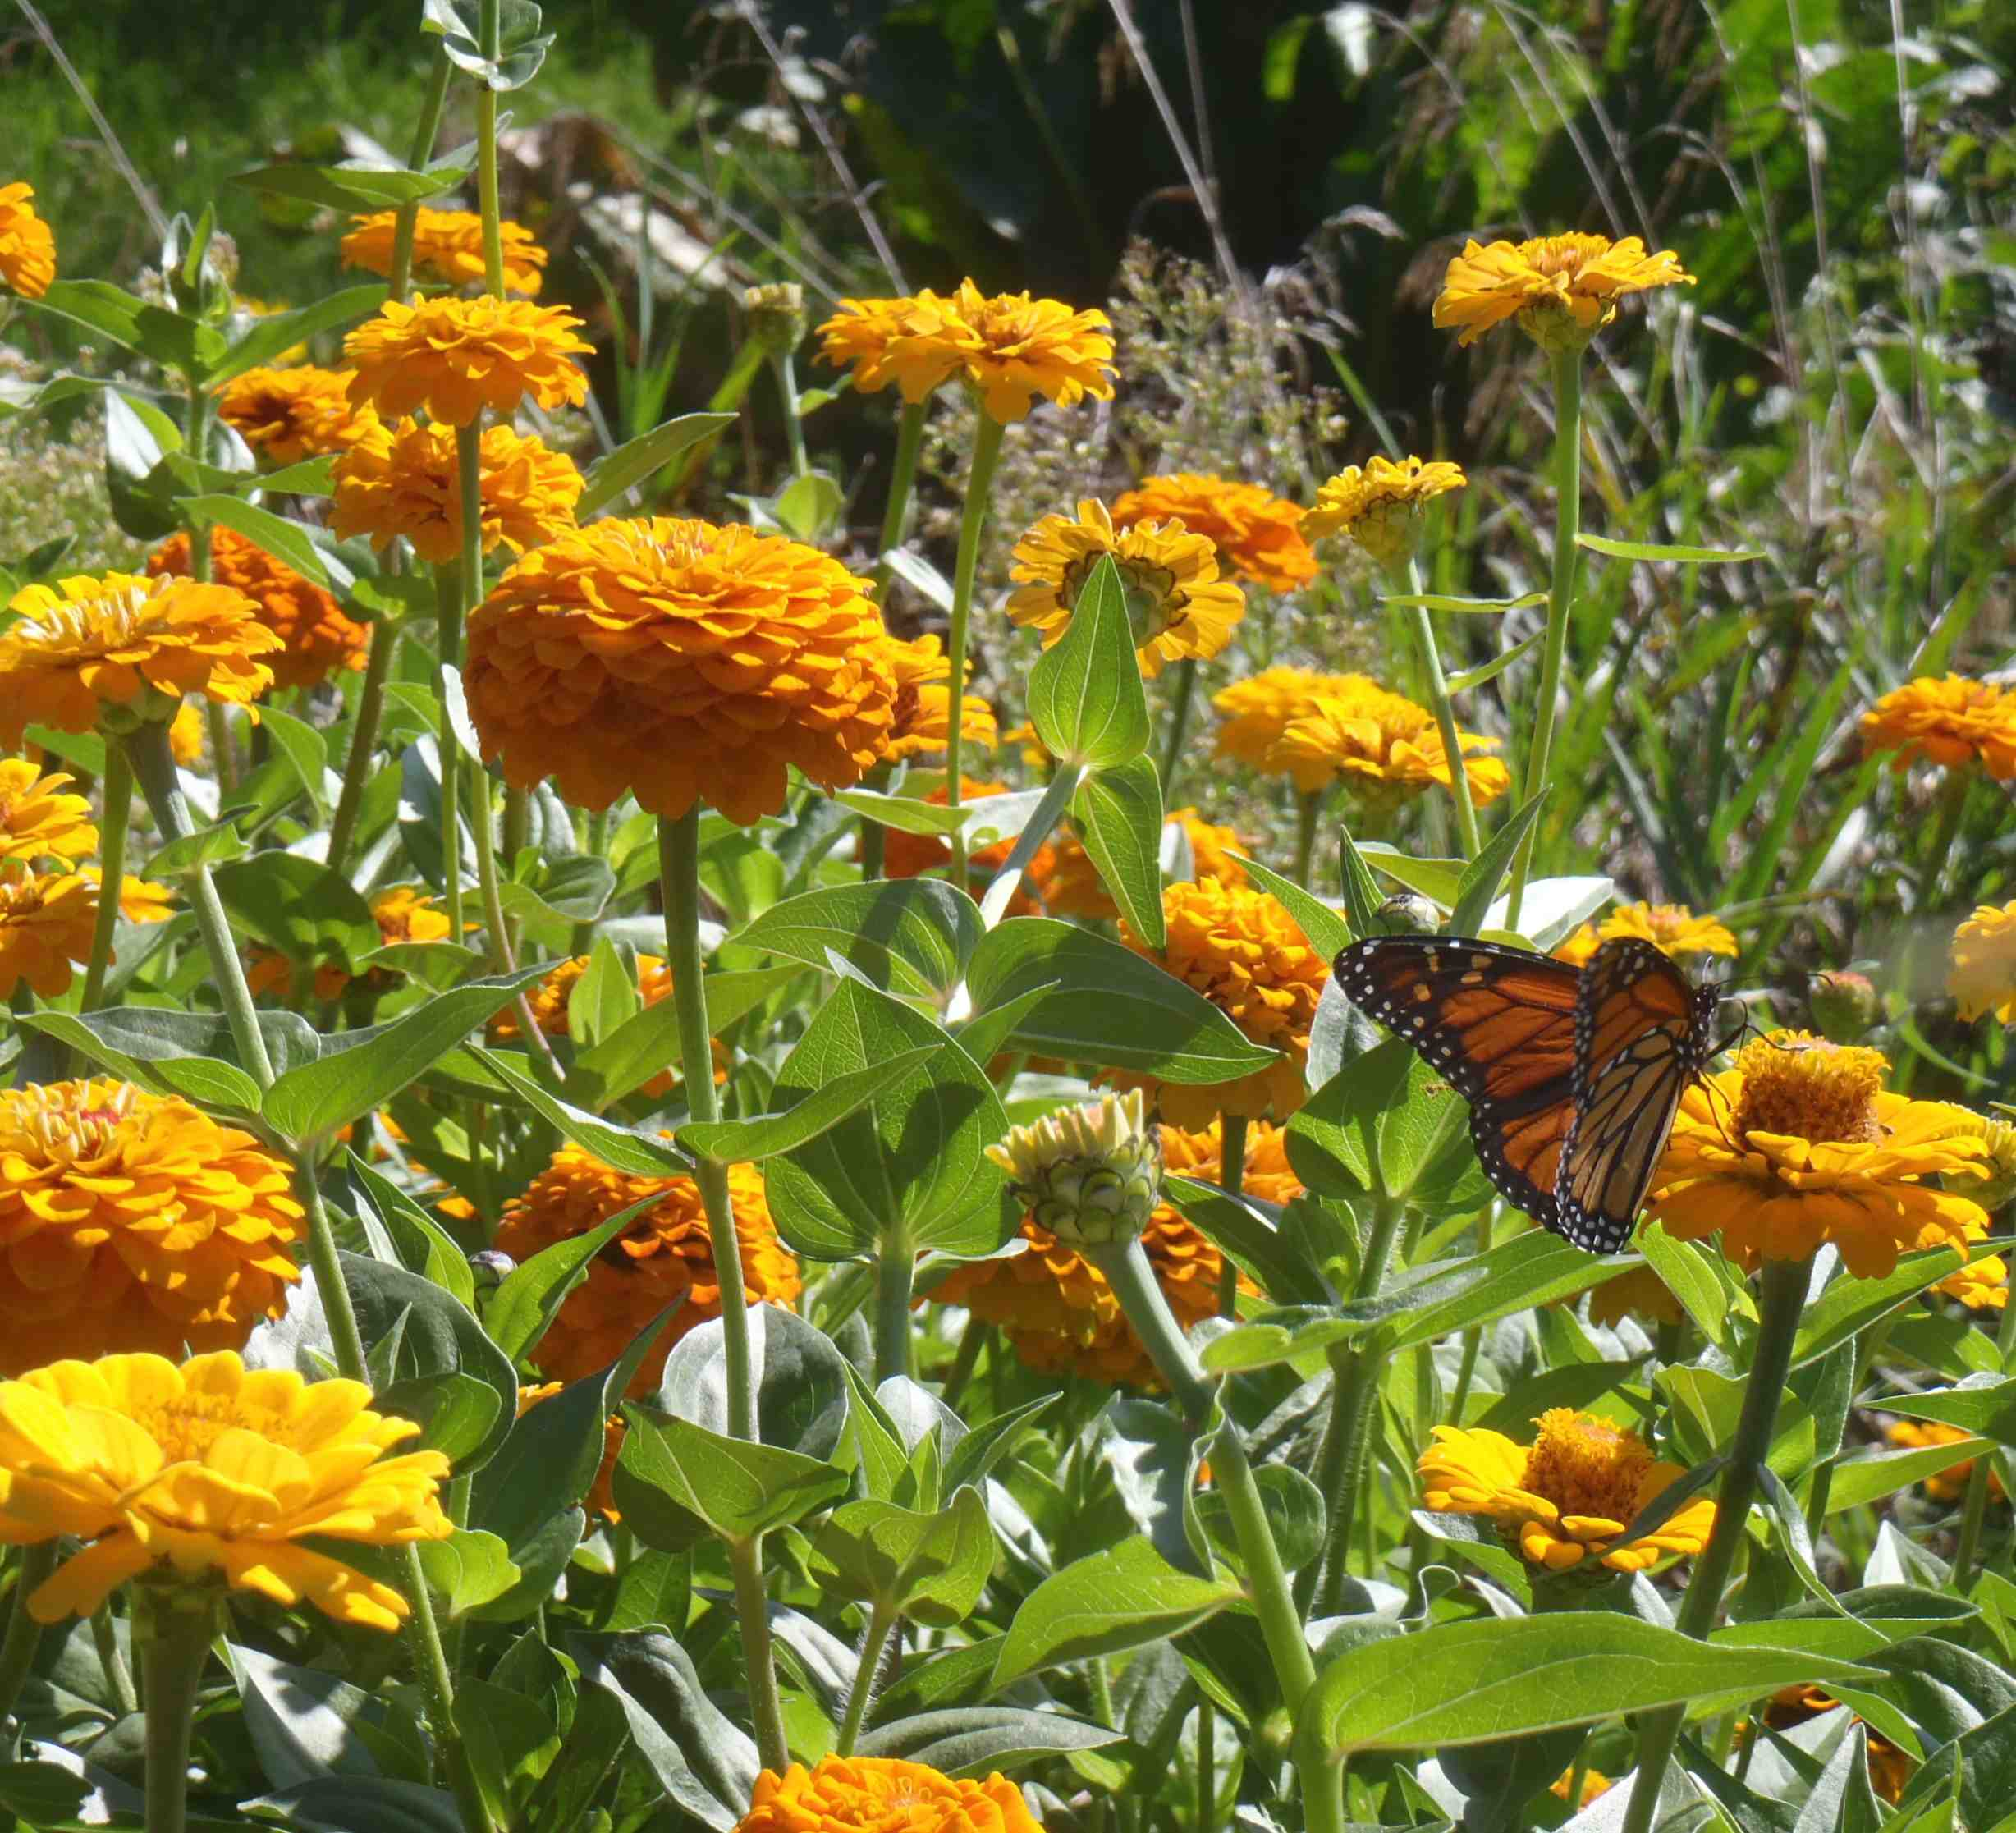 our flowers are grown for you and our pollinator friends